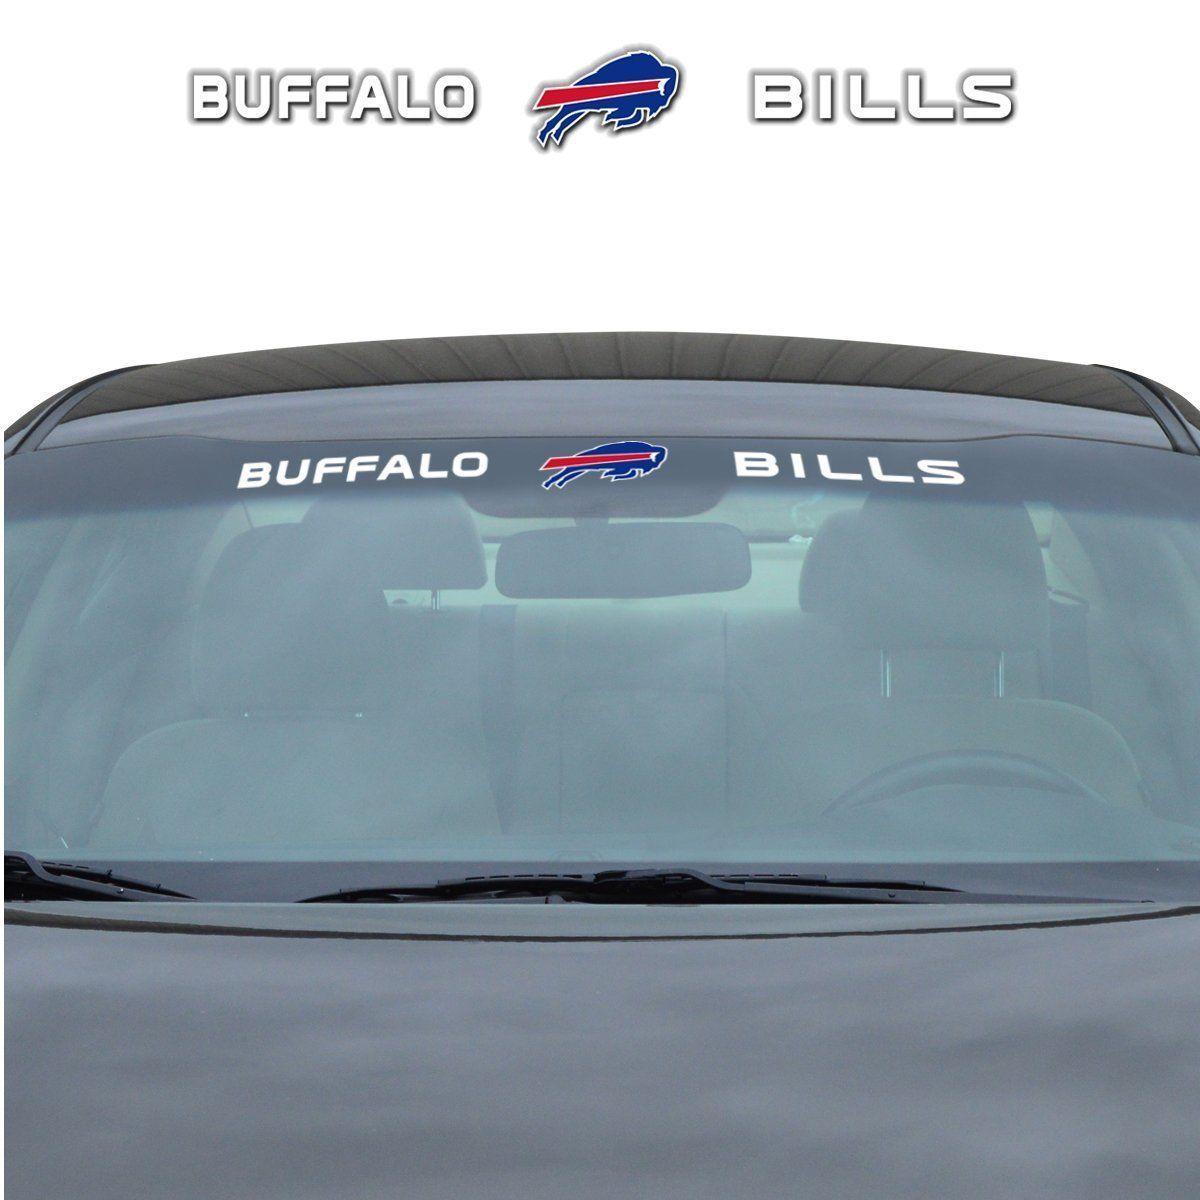 "BUFFALO BILLS 35"" X 4"" WINDSHIELD REAR WINDOW DECAL CAR TRUCK NFL FOOTBALL"